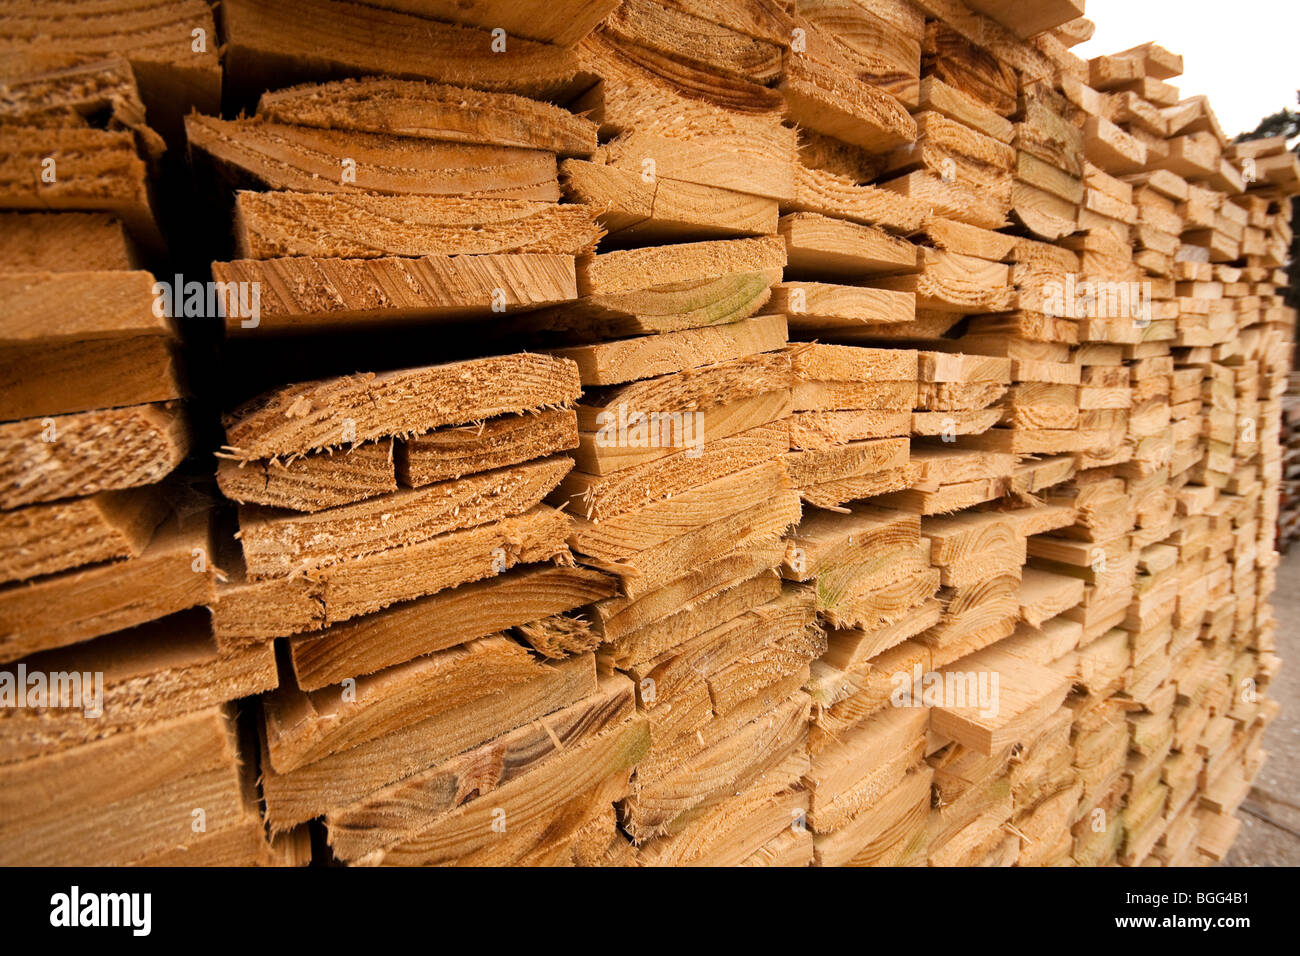 Stacks Wooden Pallets Stock Photos Amp Stacks Wooden Pallets